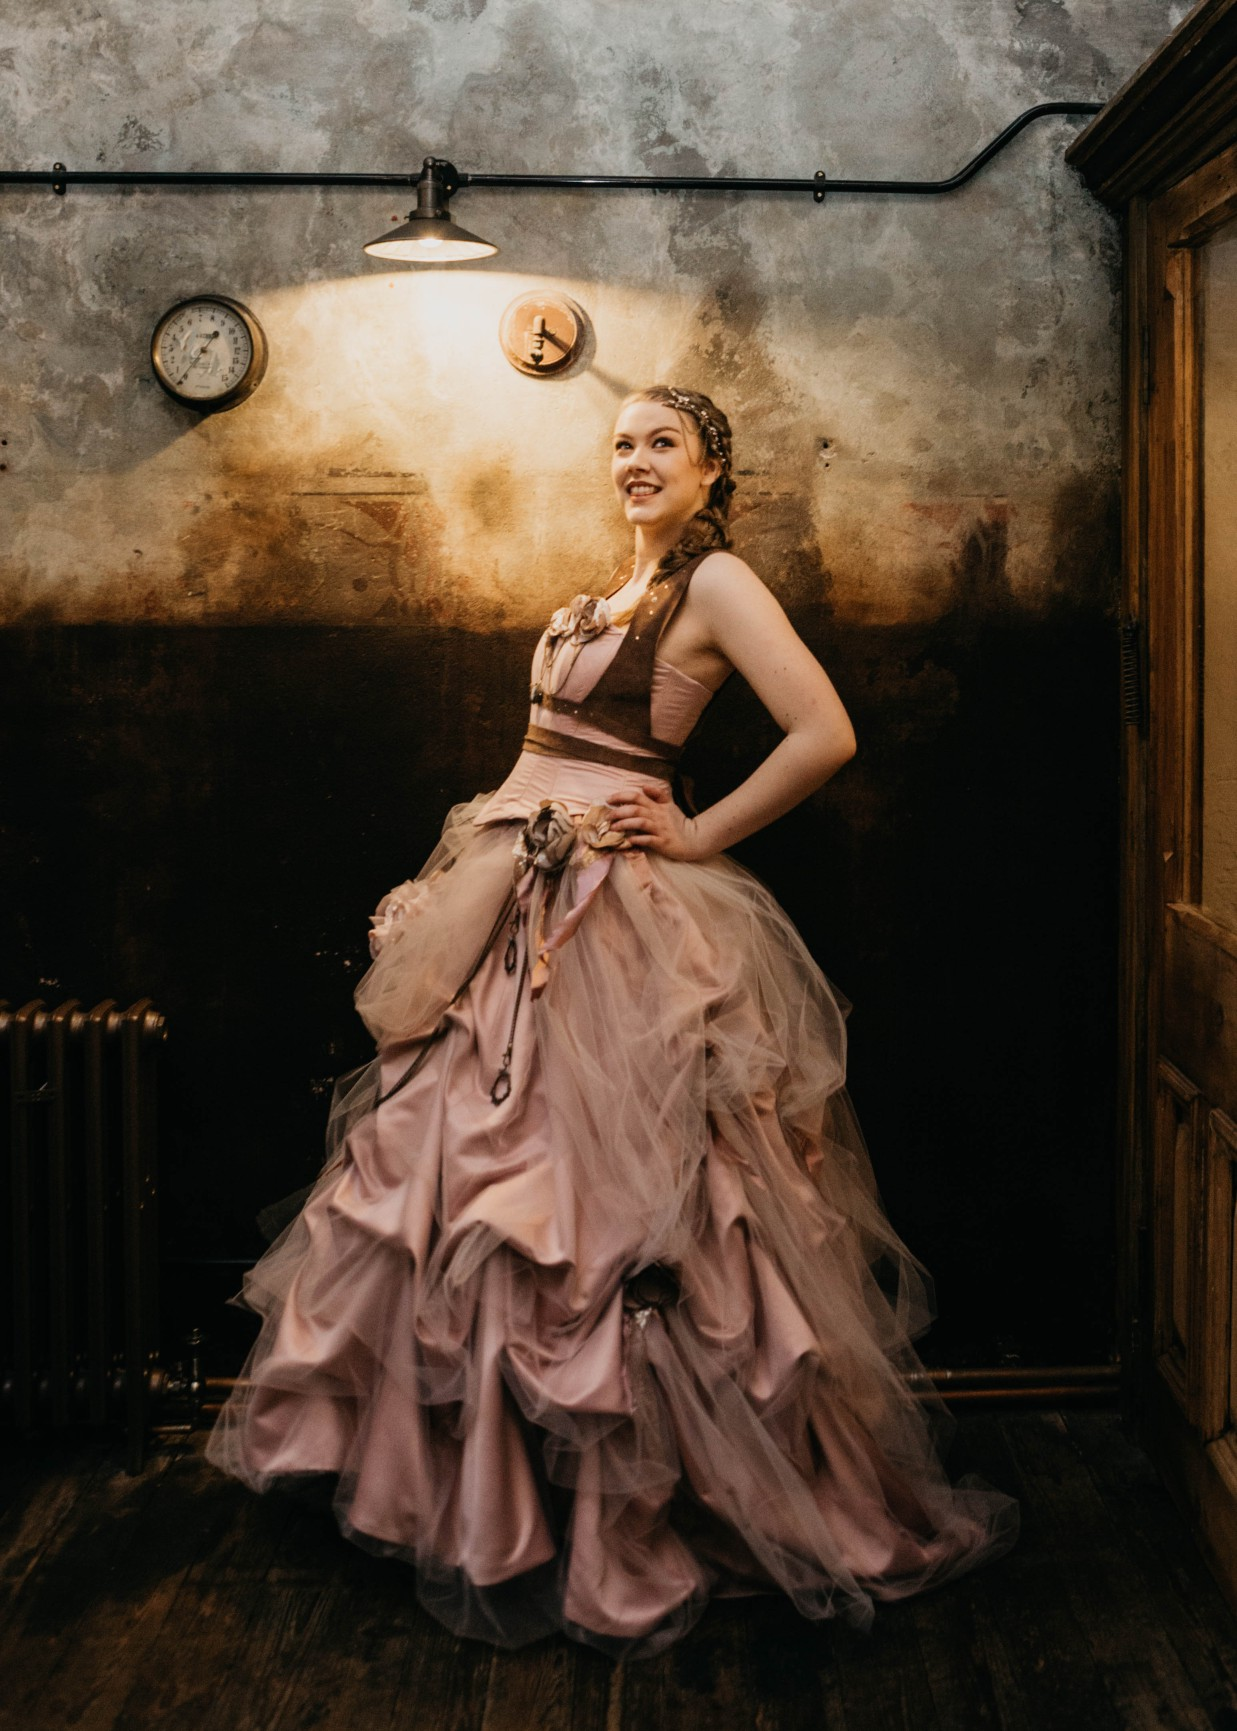 steampunk wedding dress - coloured wedding dresses - edgy wedding dress- alternative wedding dress- alternative bridalwear